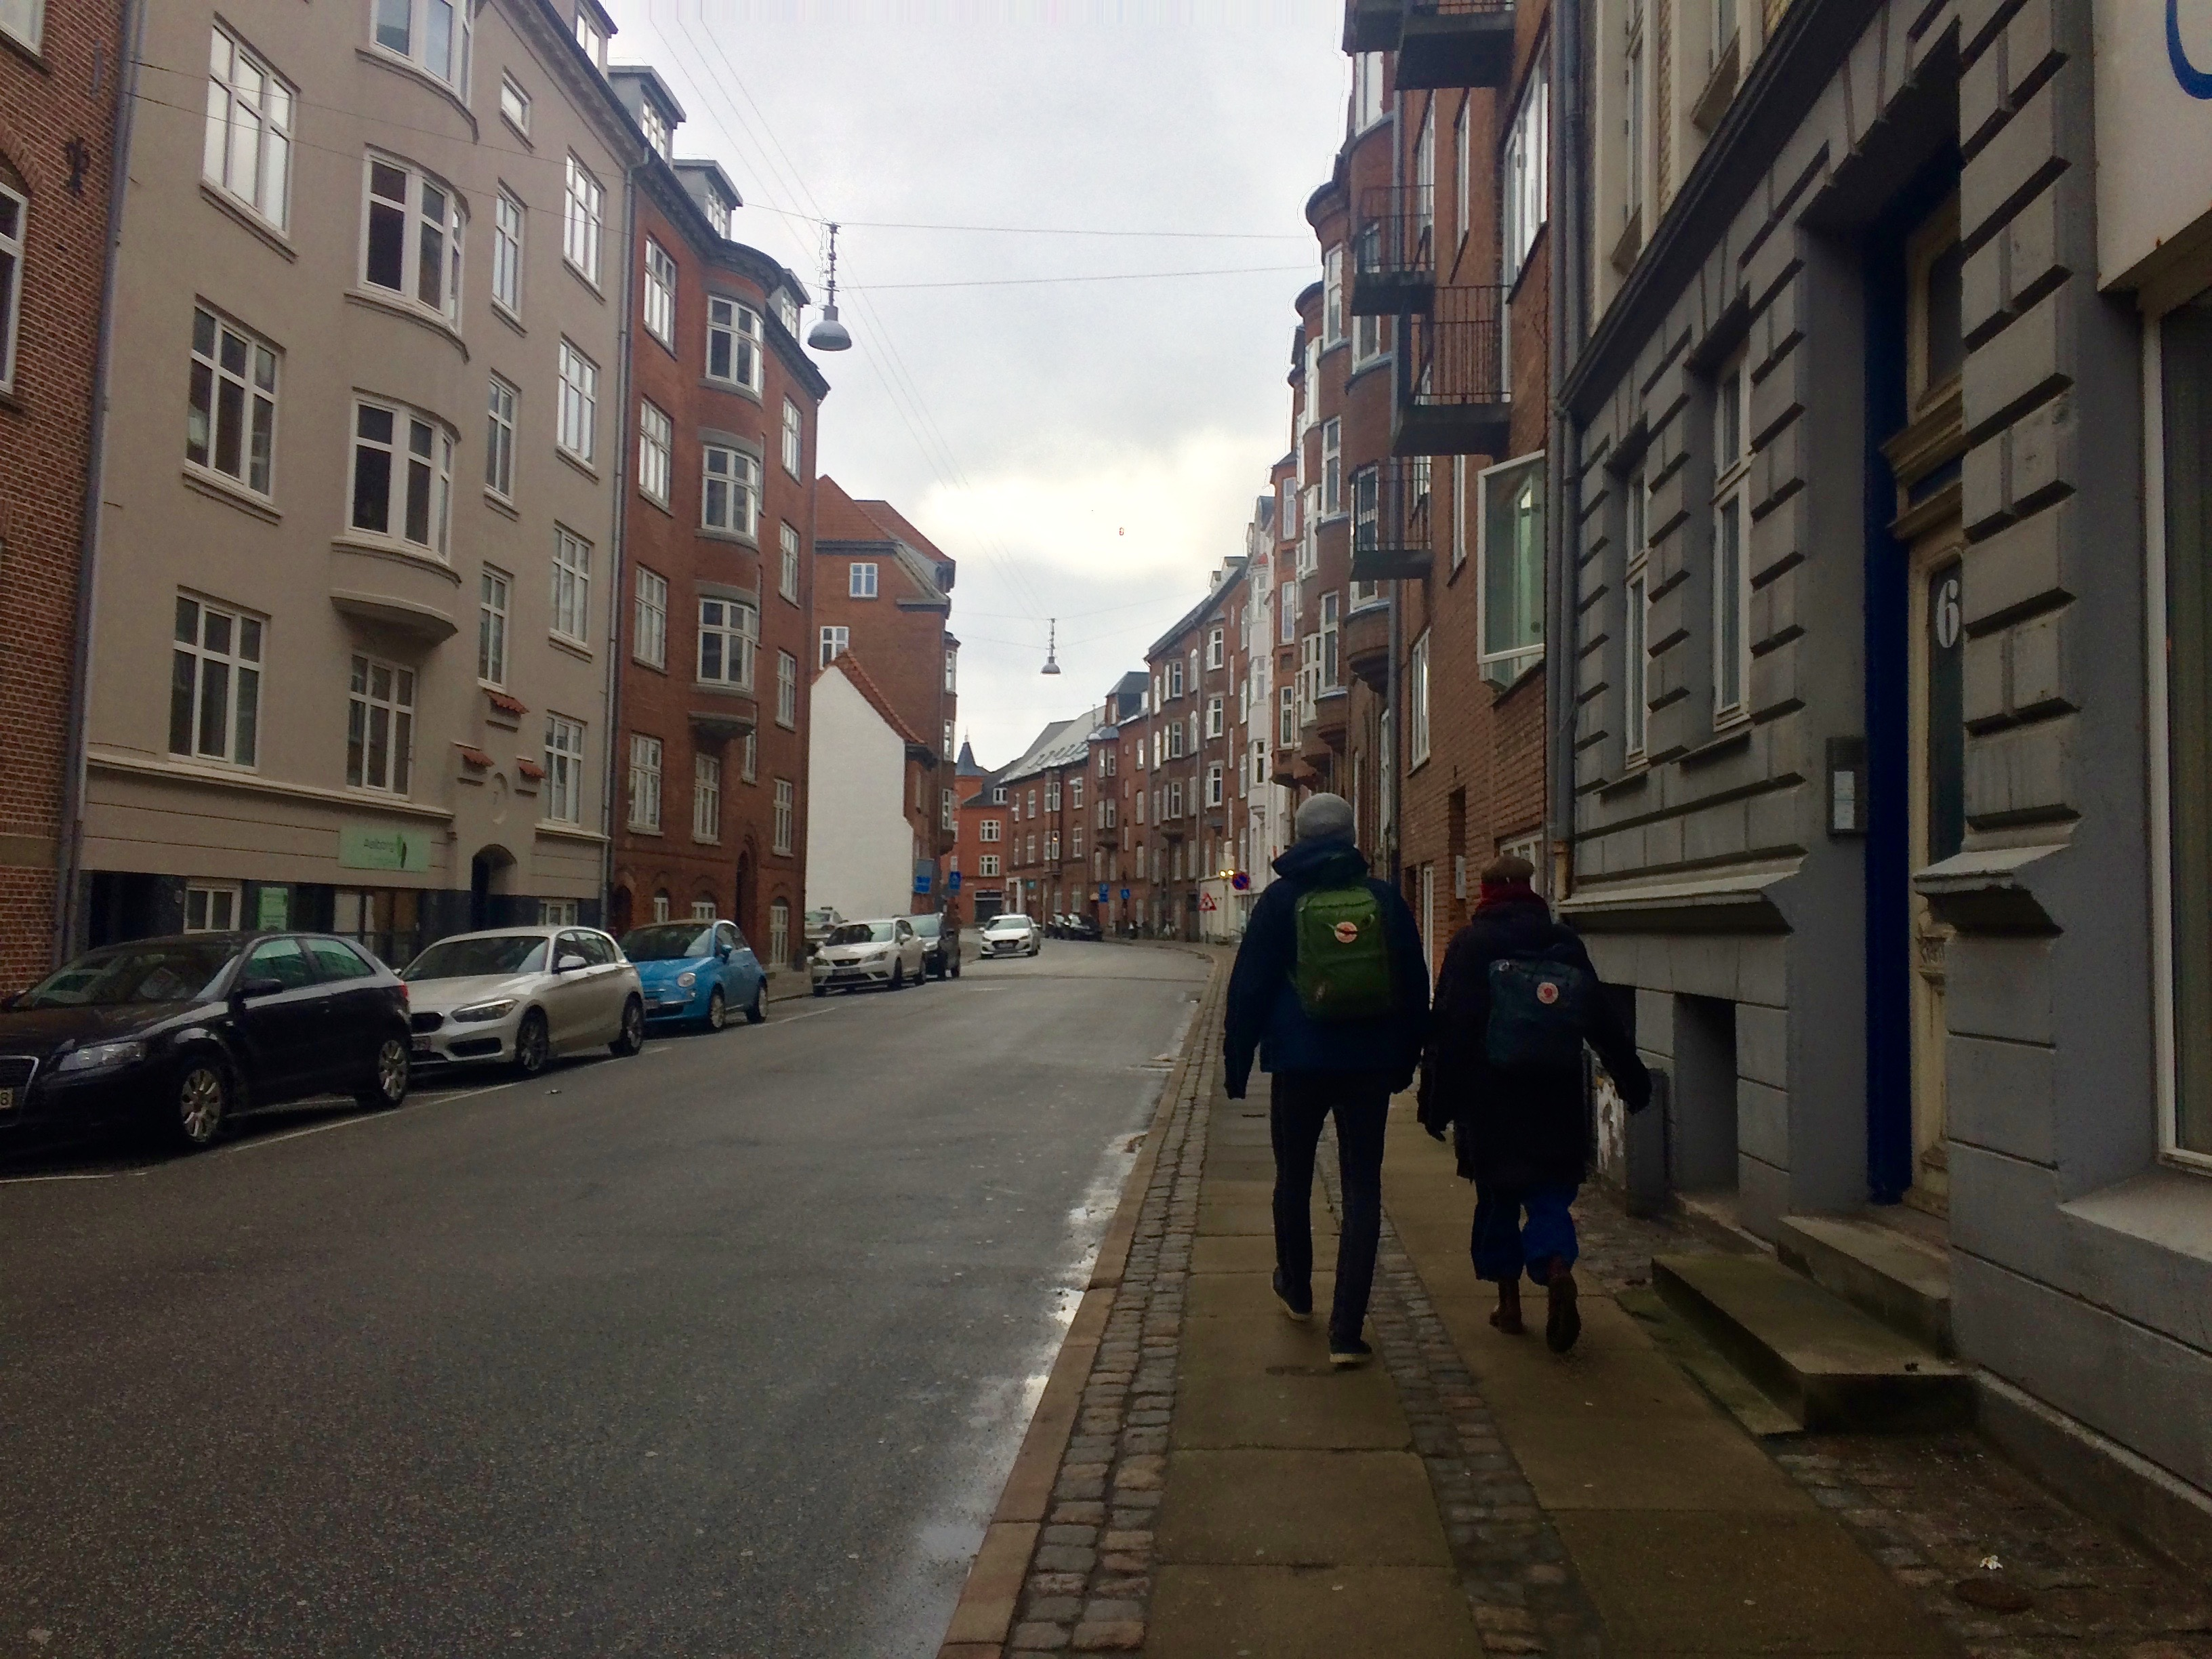 My two friends at the streets of Aalborg